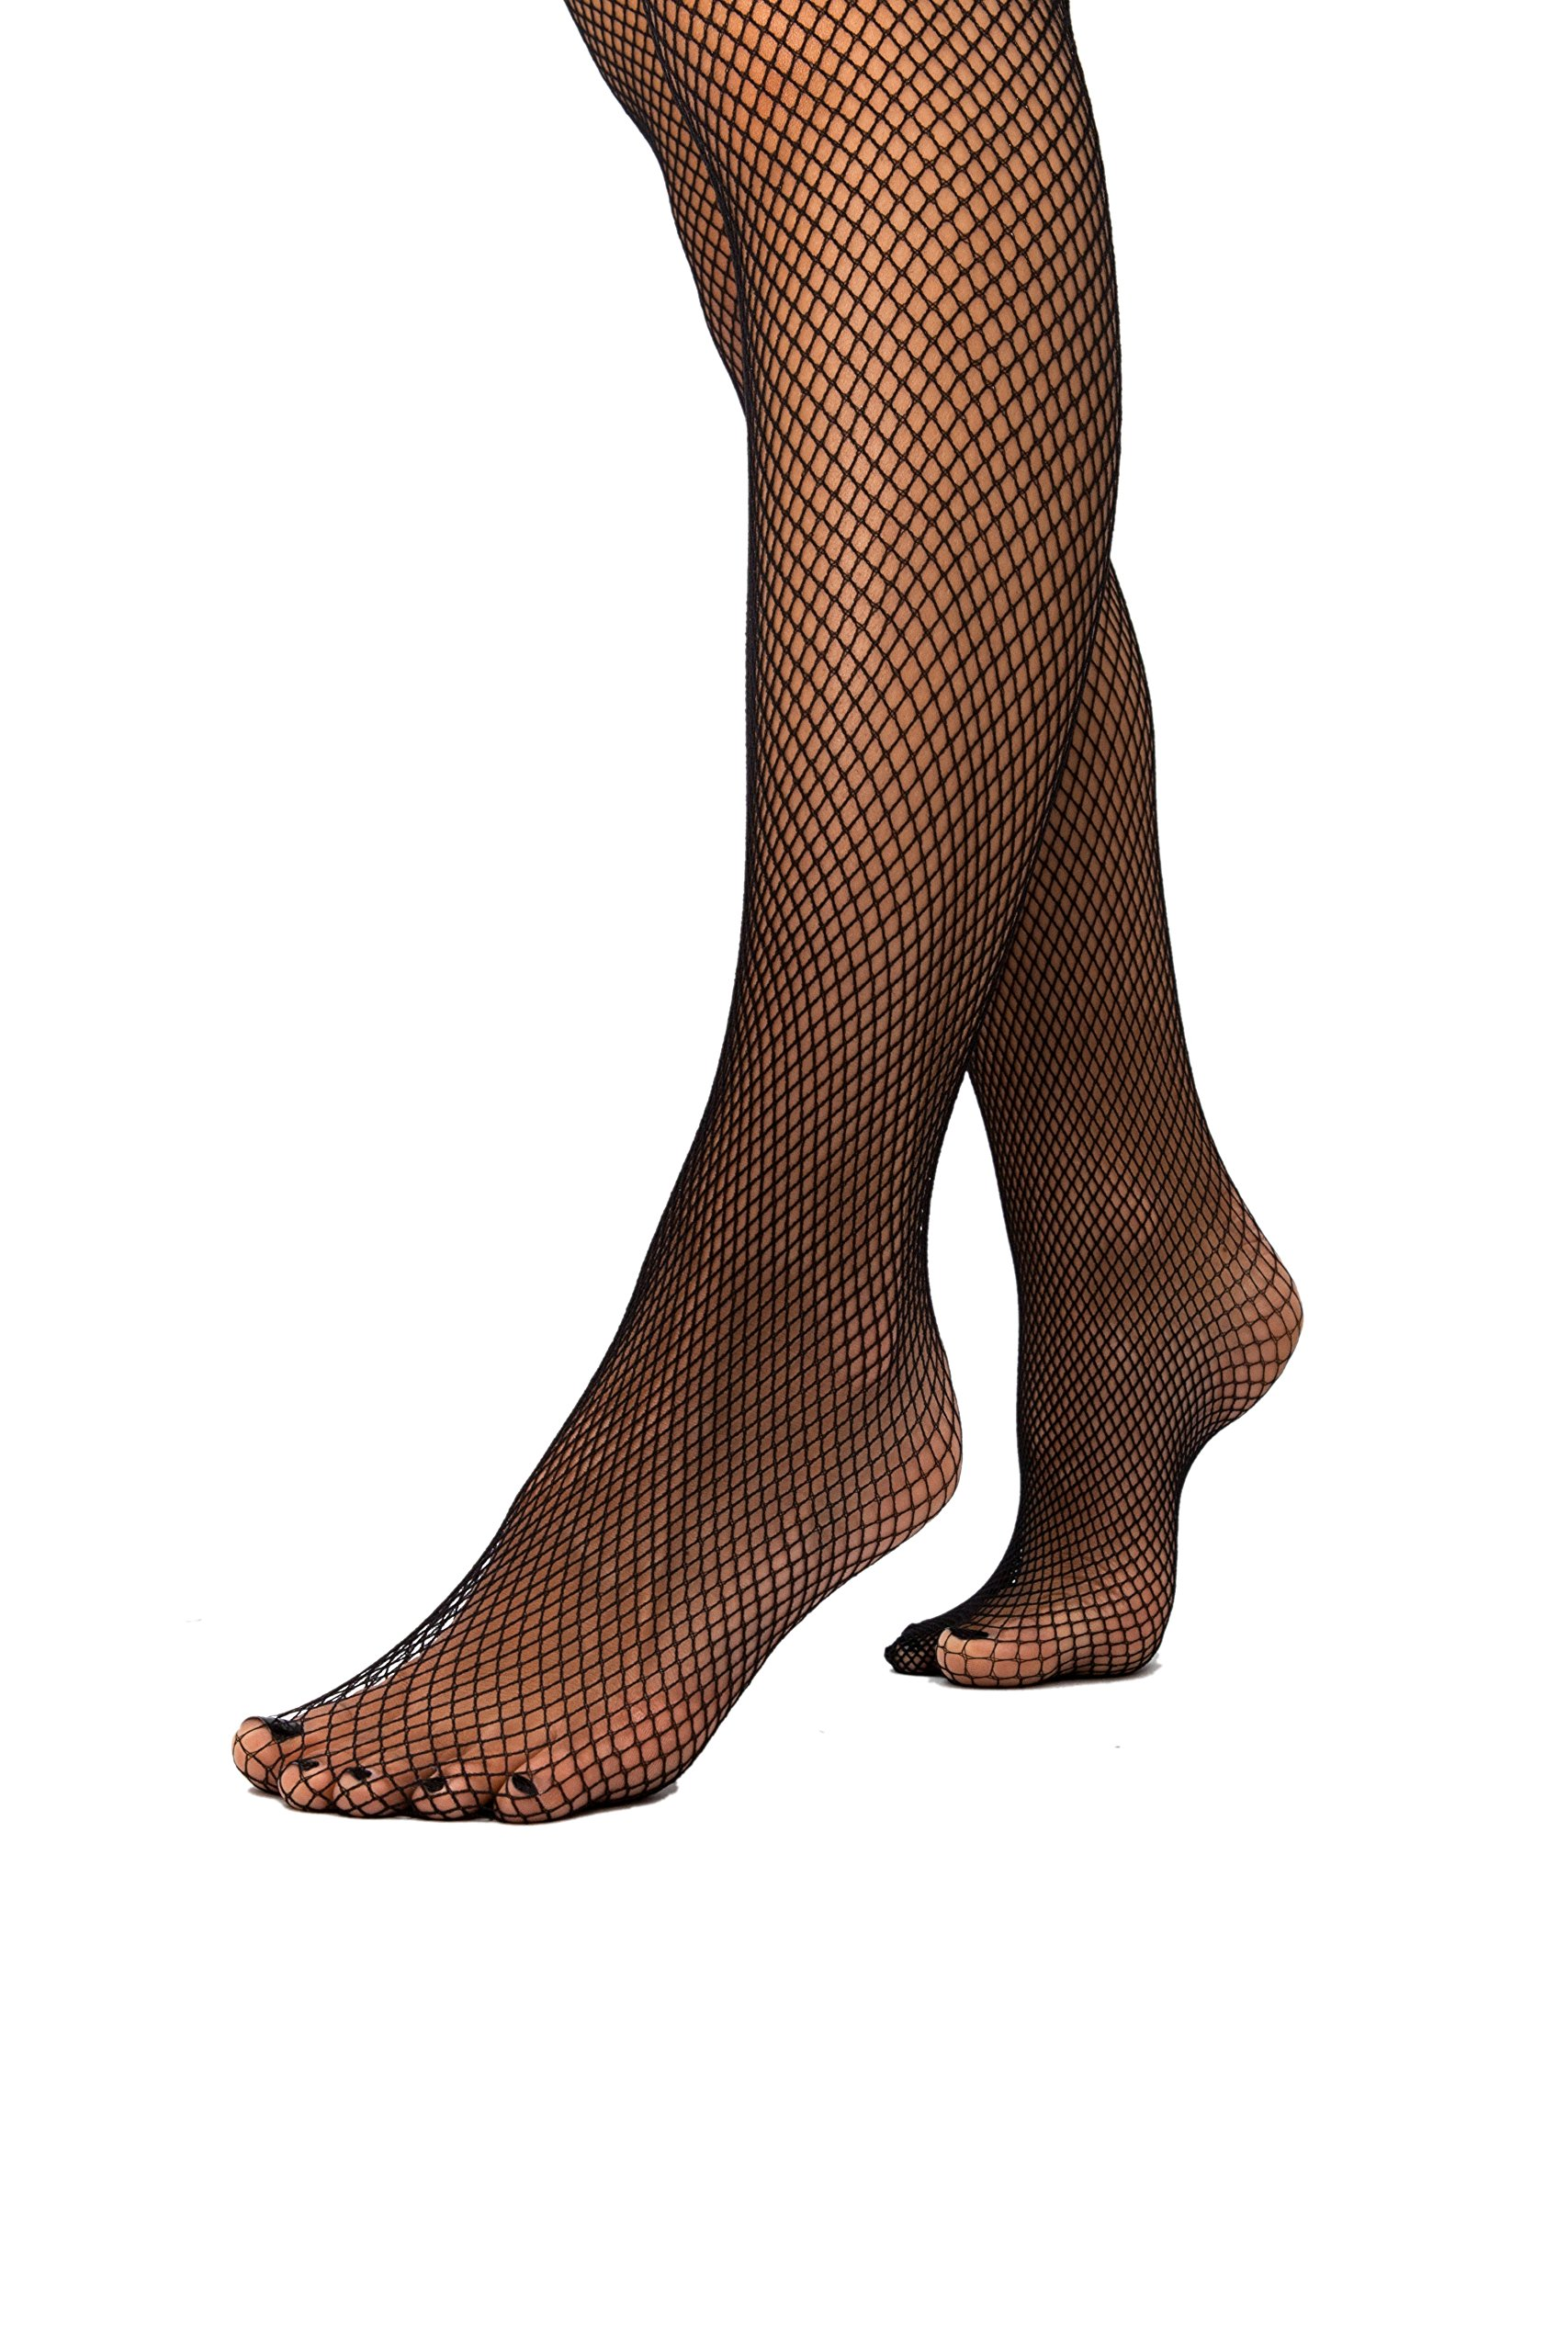 sofsy Fishnet Thigh-High Stockings for Women Silicone Lace Top Nylon Net Lingerie Hosiery [Made In Italy] Black Medium/Large by sofsy (Image #6)